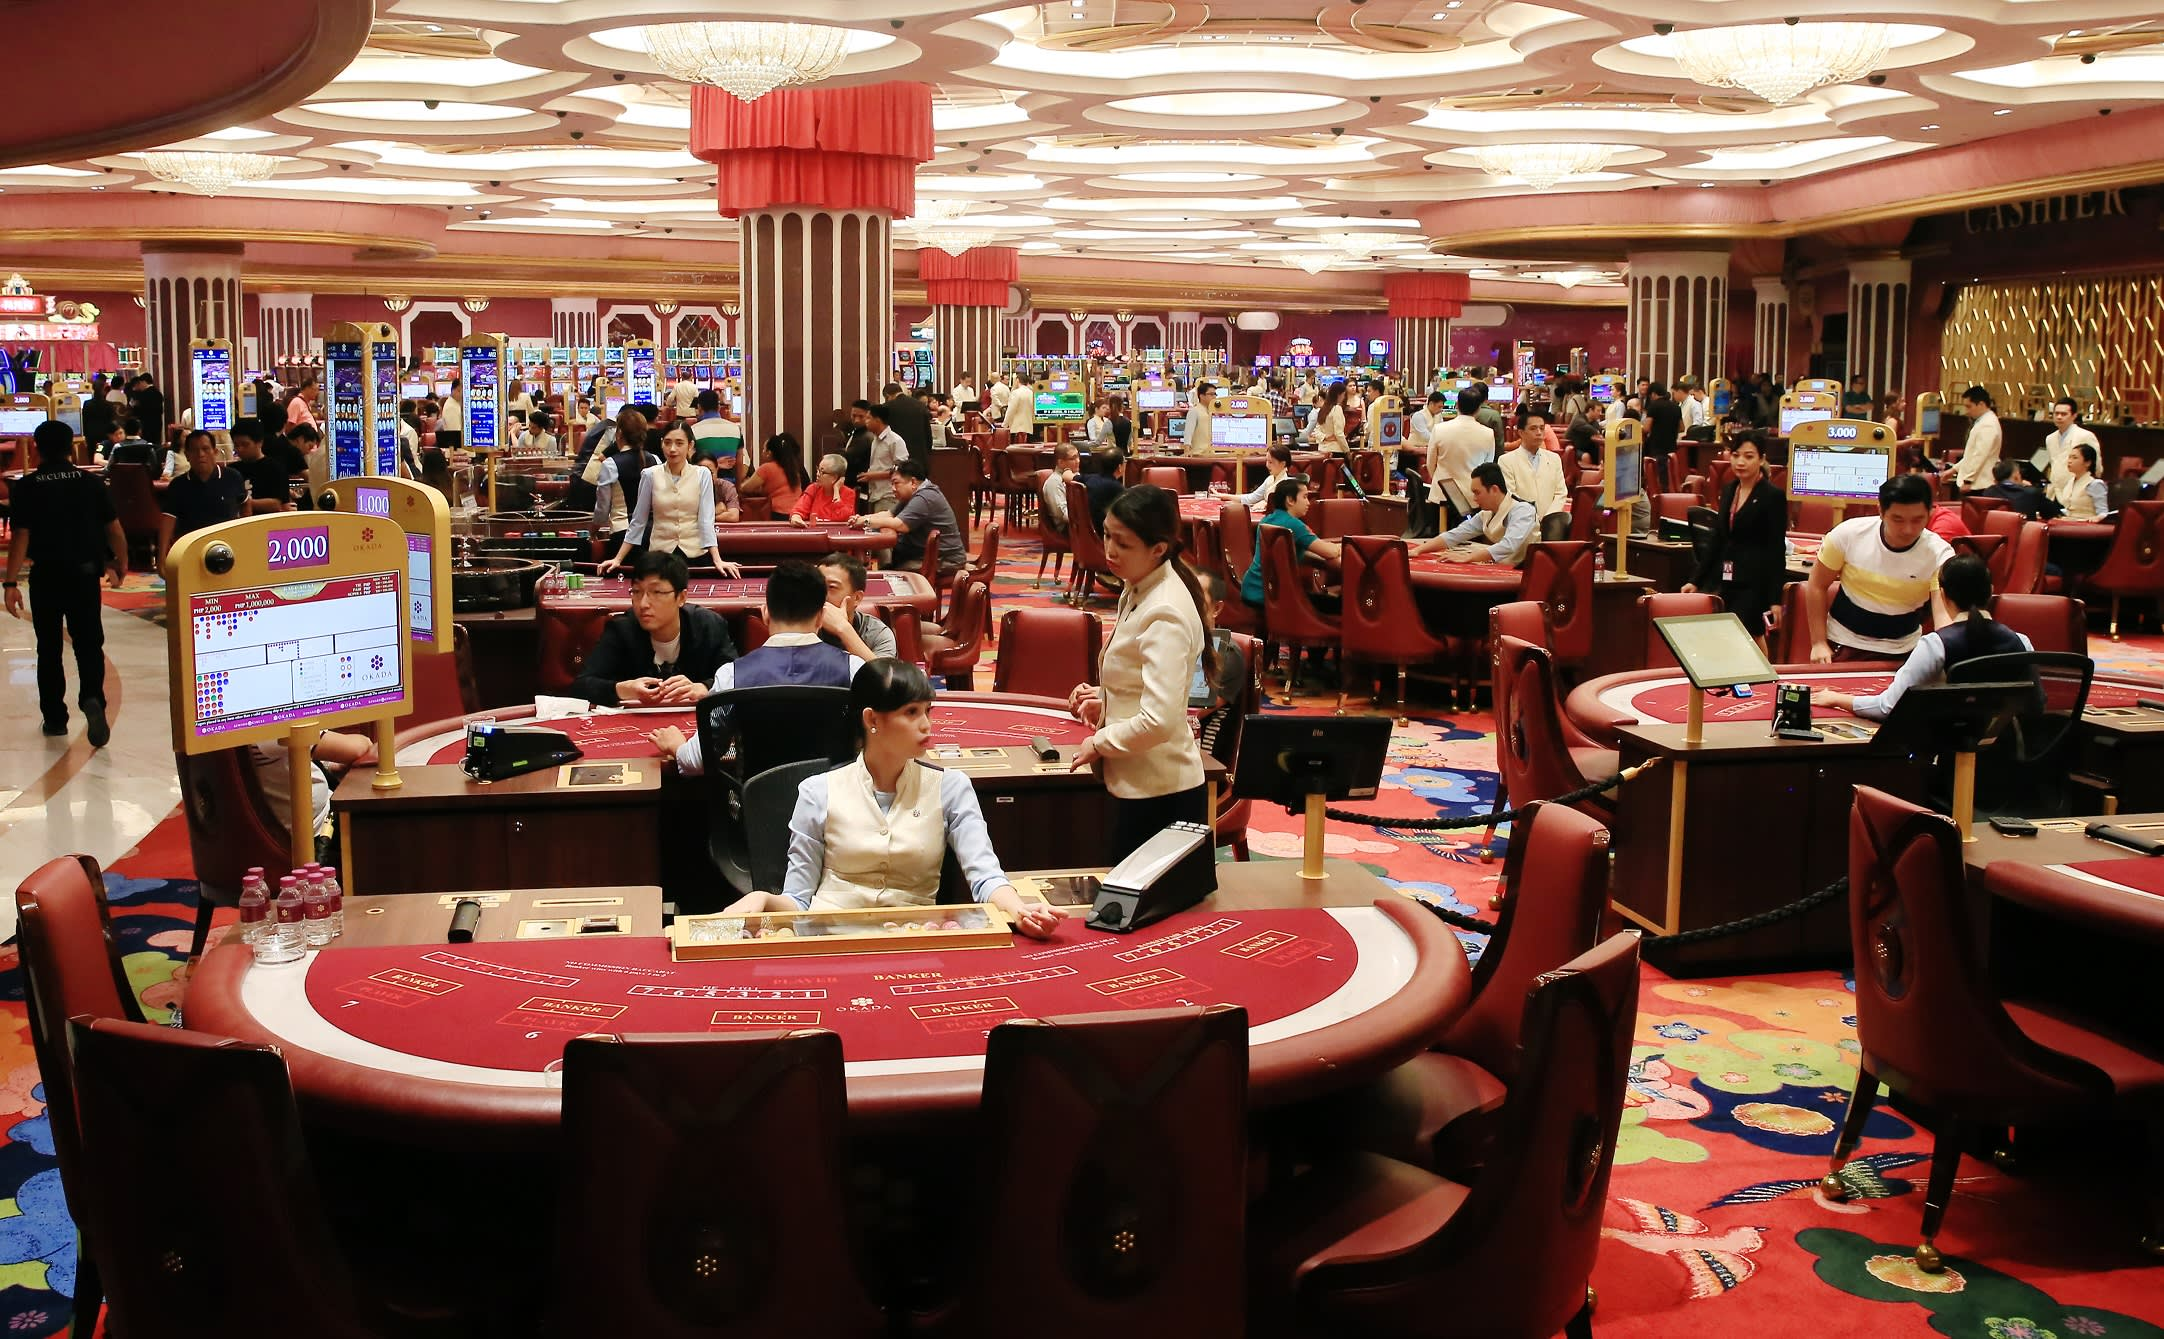 Macau casinos employee bonus